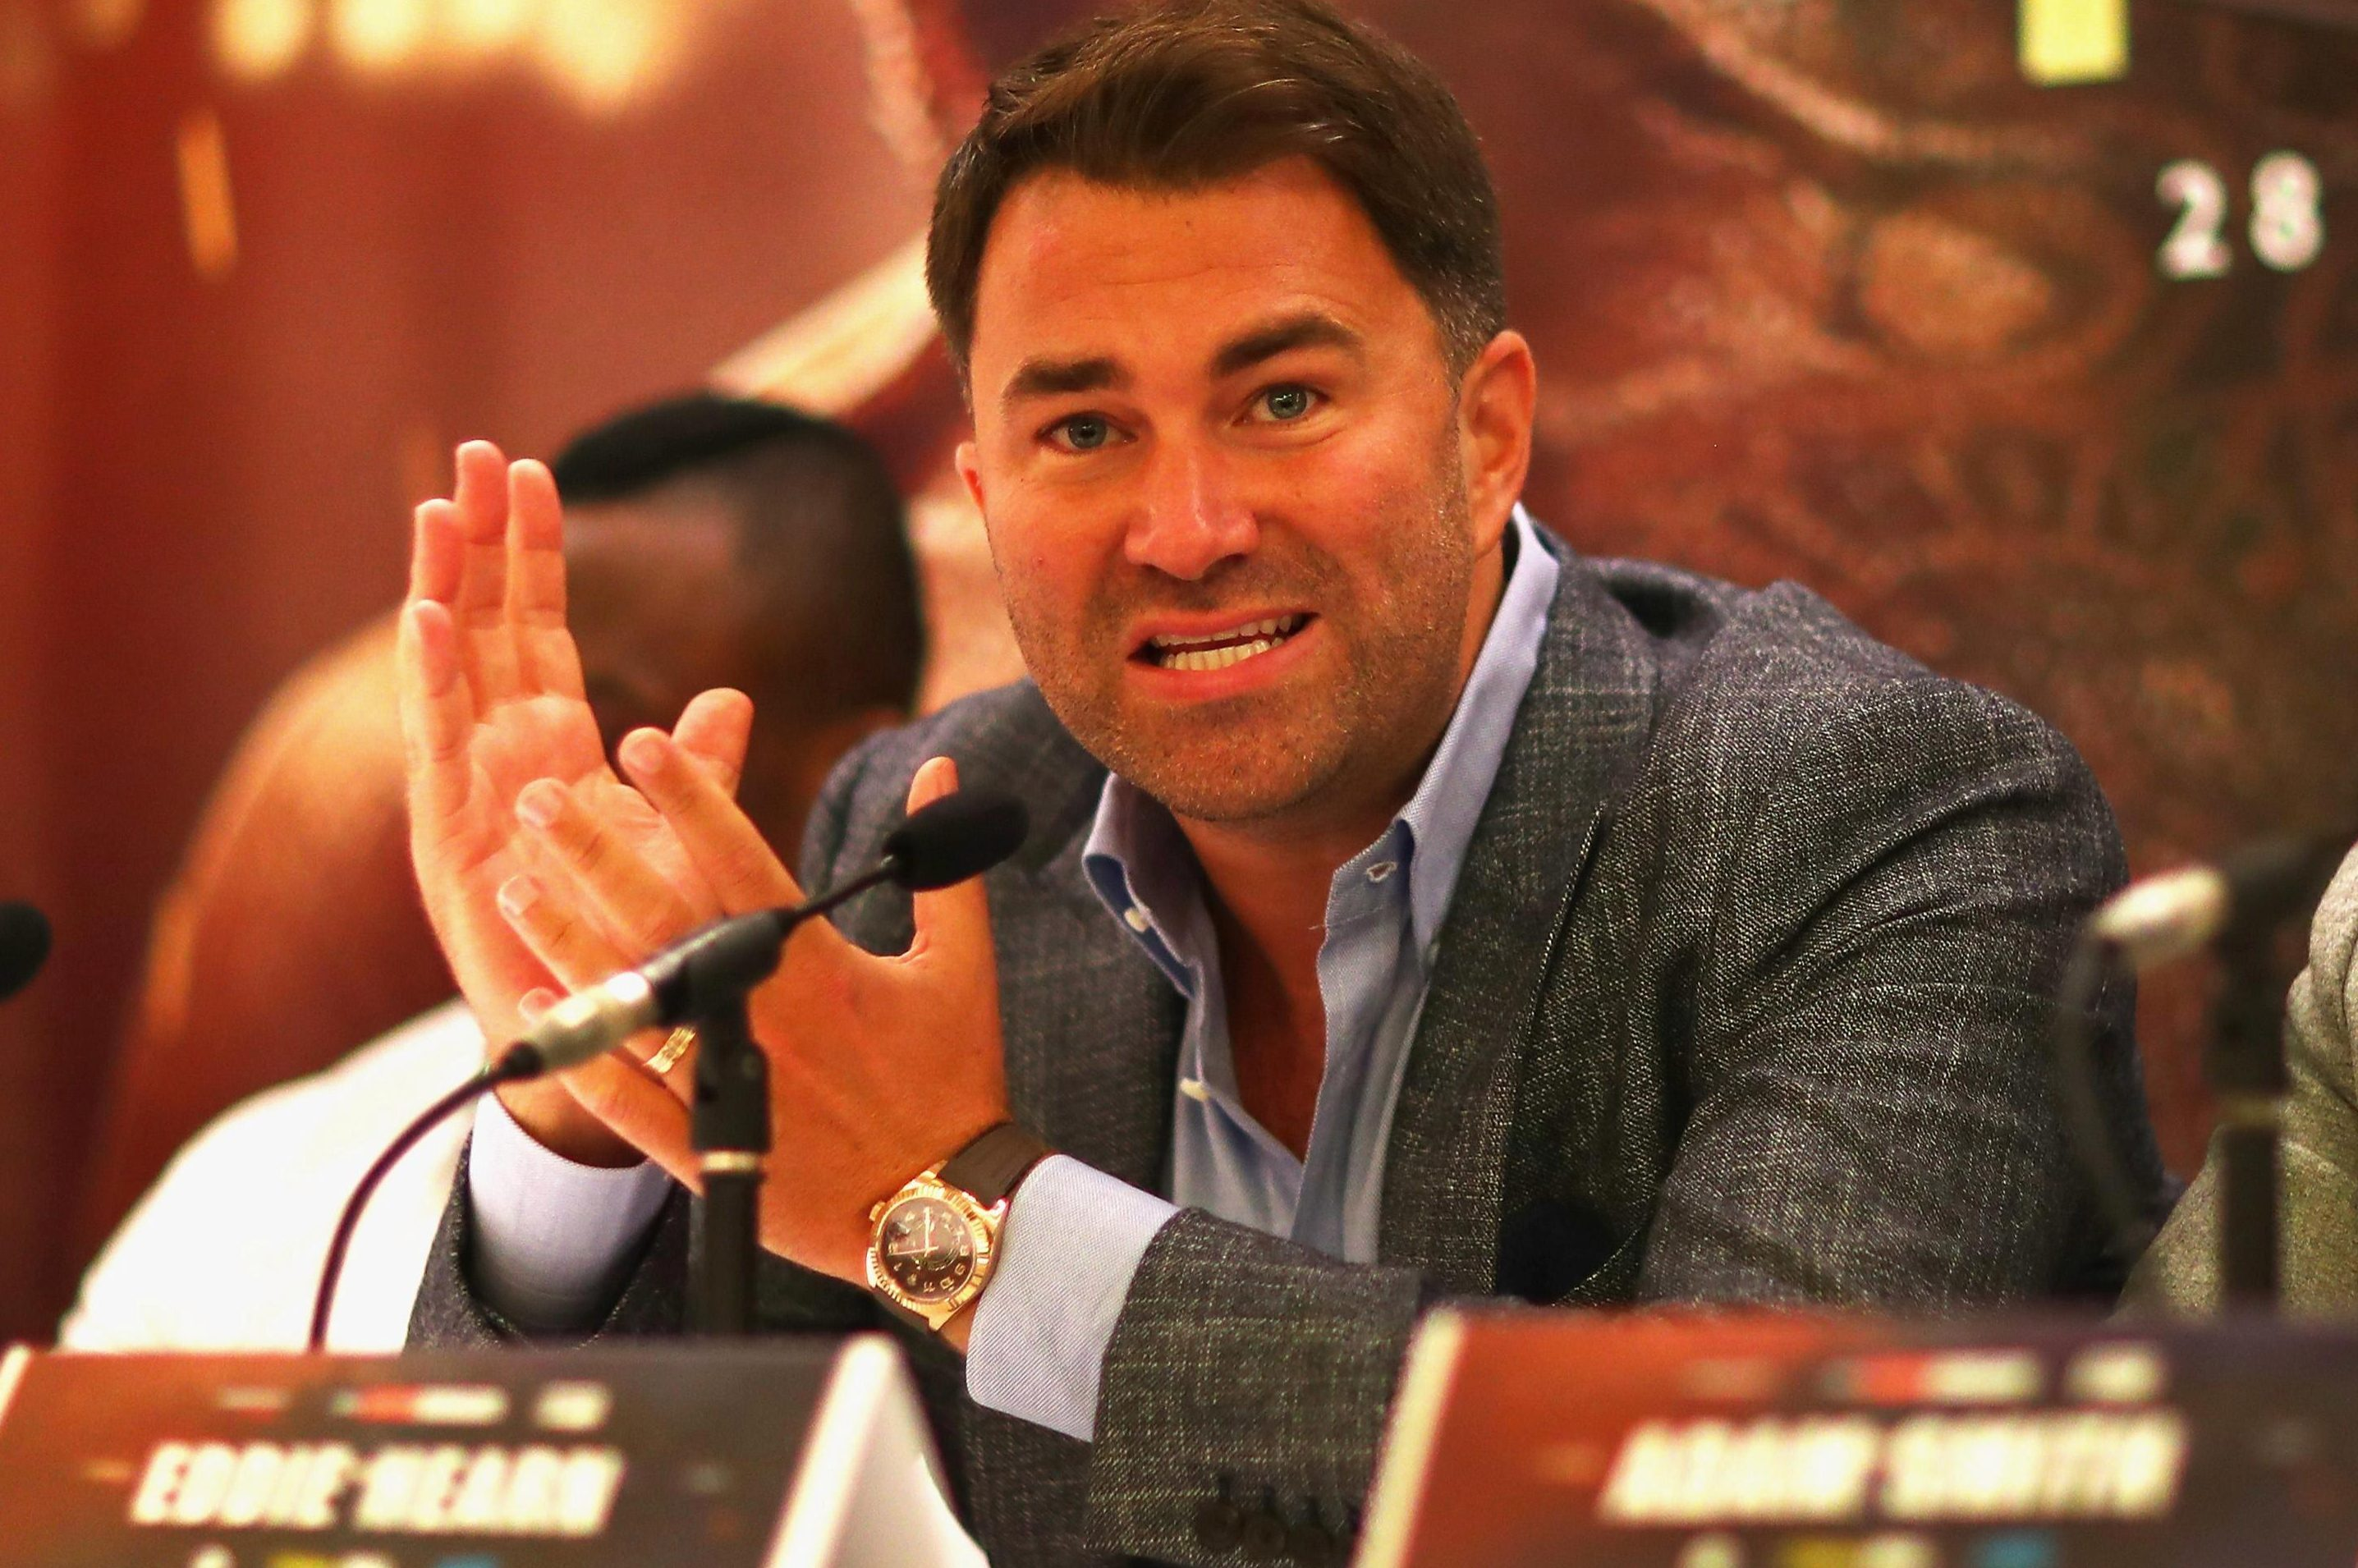 Eddie Hearn is concerned that Deontay Wilder has jumped the gun with negotiations for a mandatory challenger underway